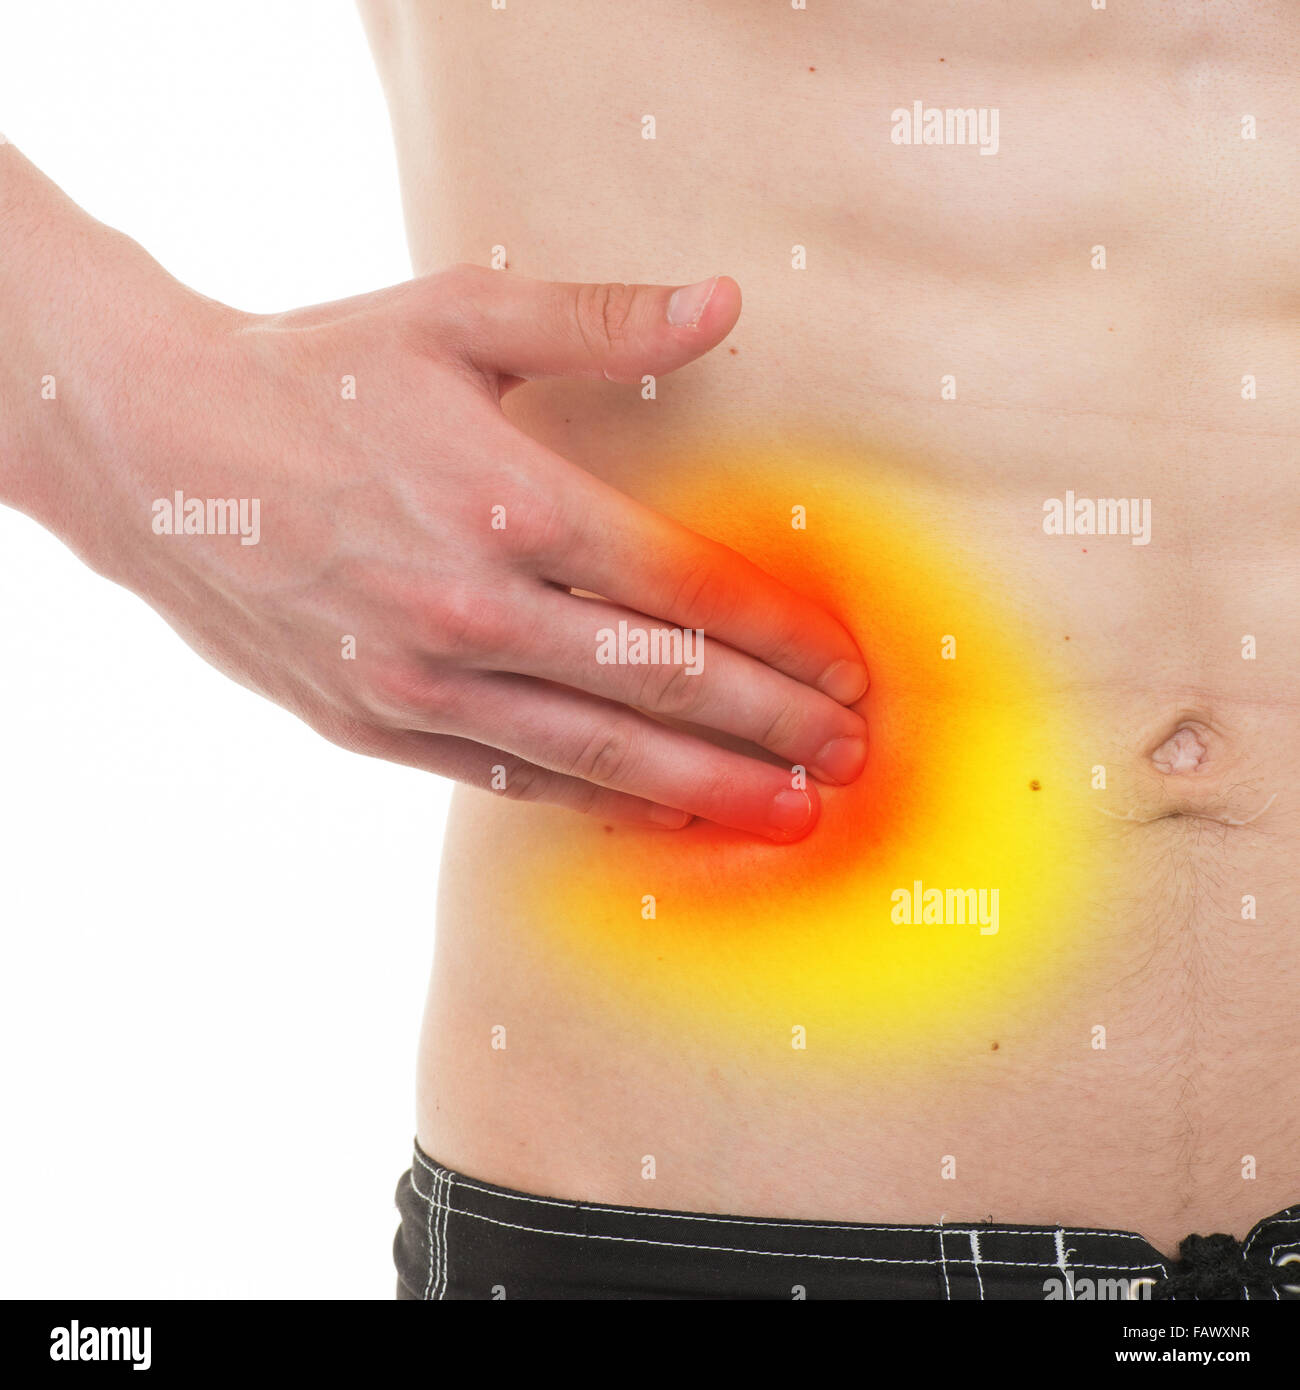 Abdominal Organs Stock Photos & Abdominal Organs Stock Images - Alamy